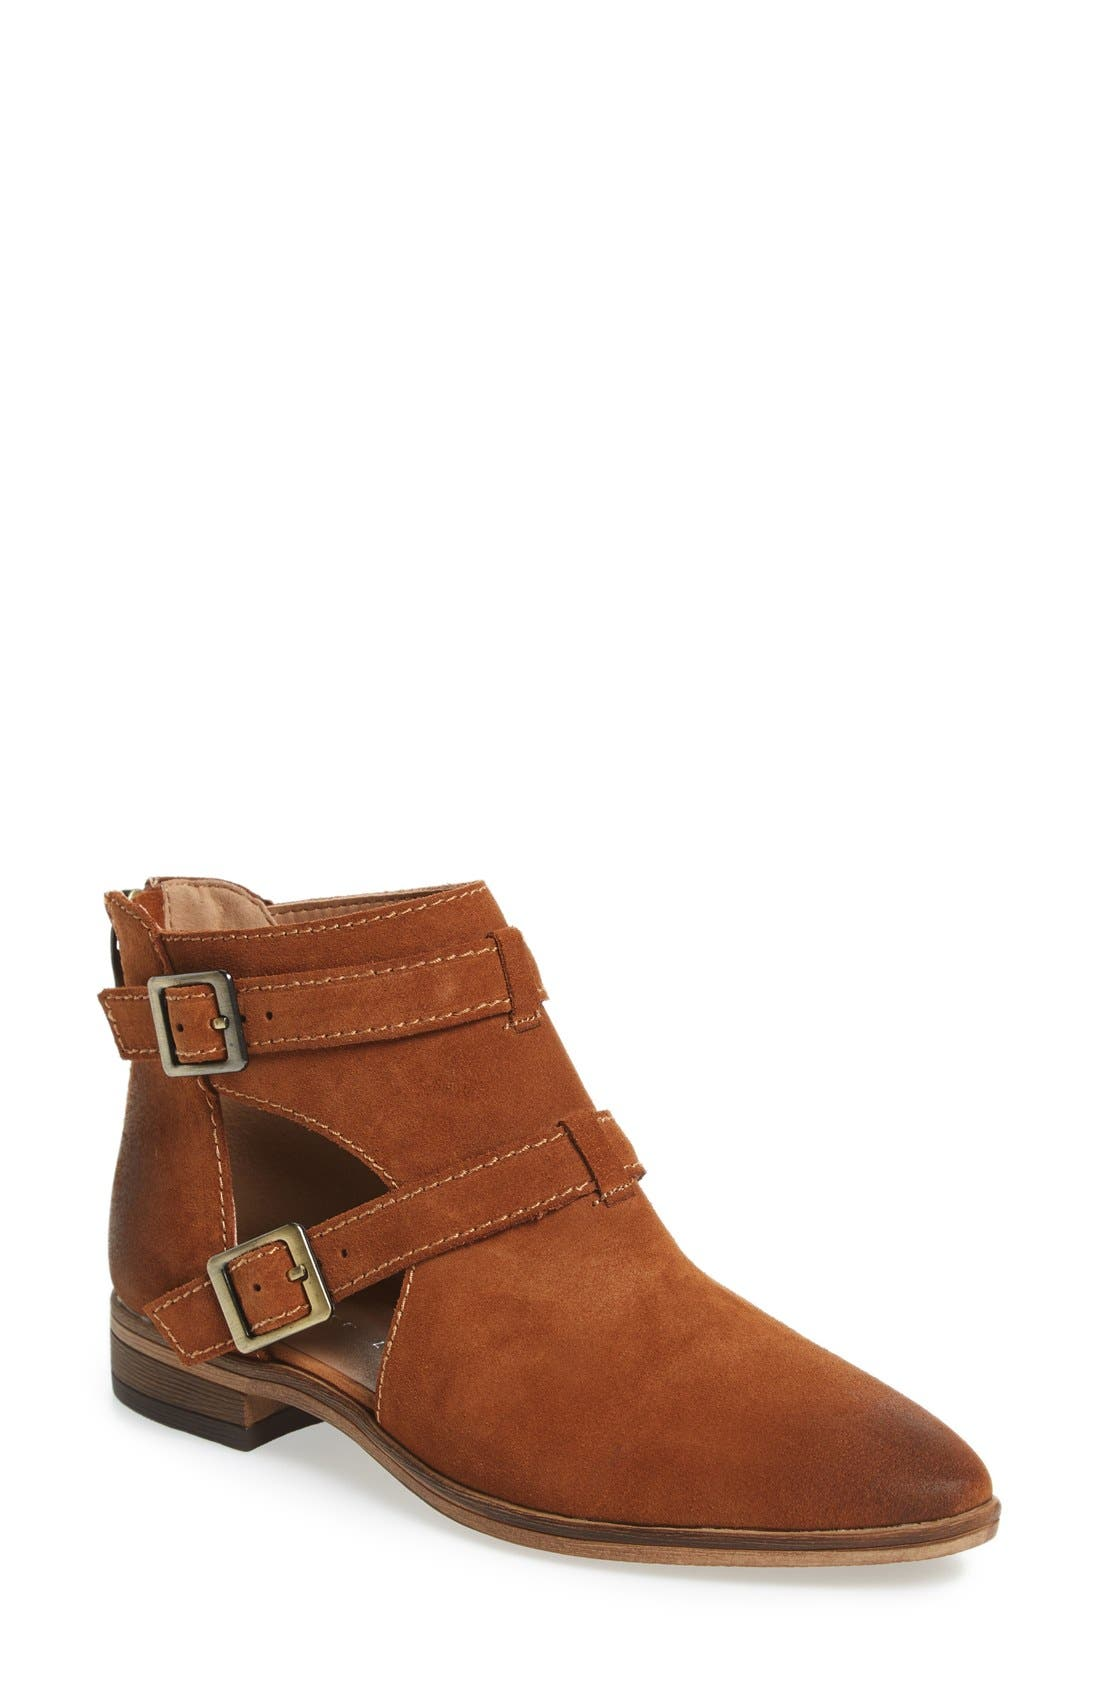 Alternate Image 1 Selected - Chinese Laundry 'Dandie' Cutout Bootie (Women)